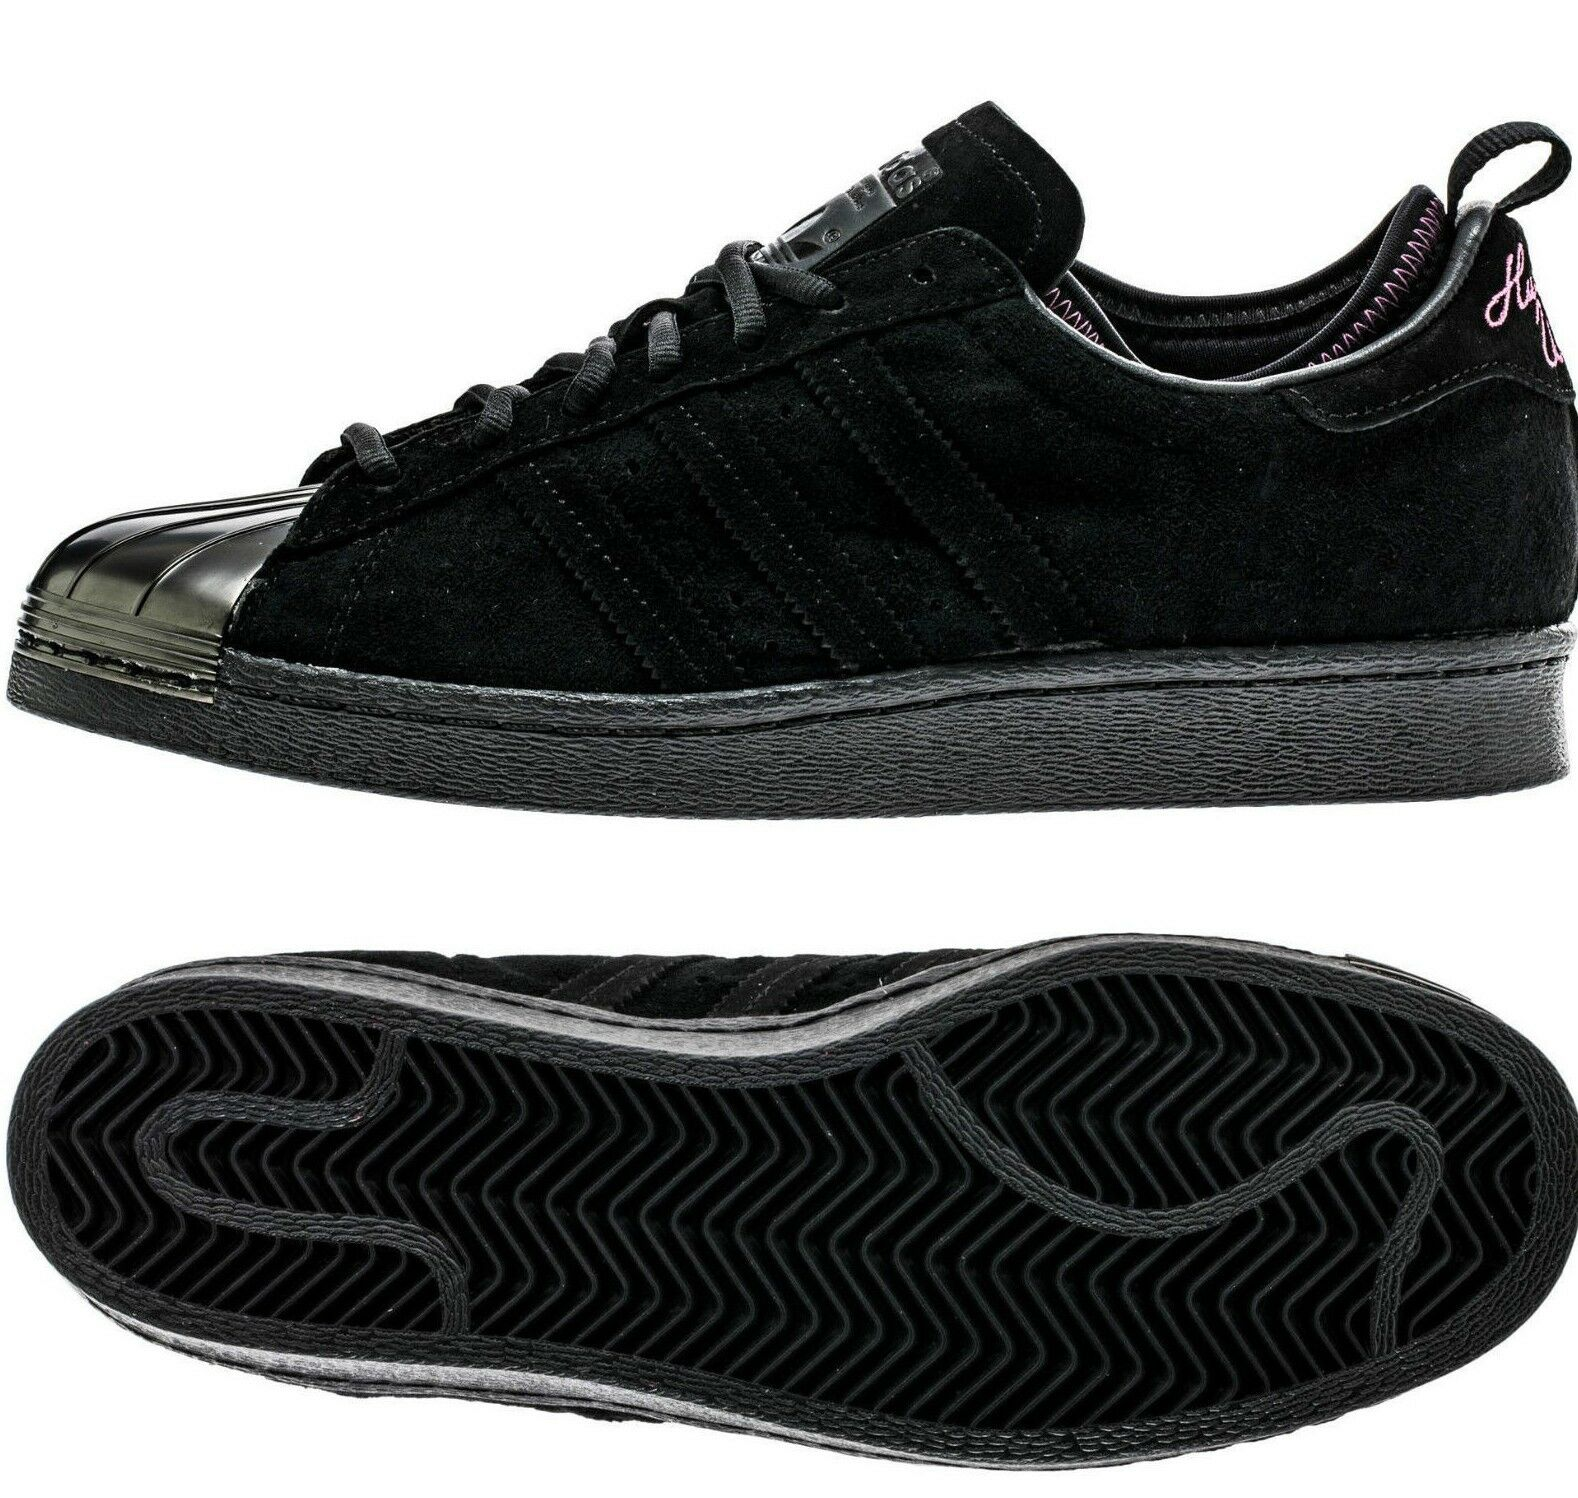 MENS ADIDAS ORIGINAL X SUPERSTAR 80'S EDDIE HUANG WORLD BLACK ATHLETIC SHOES